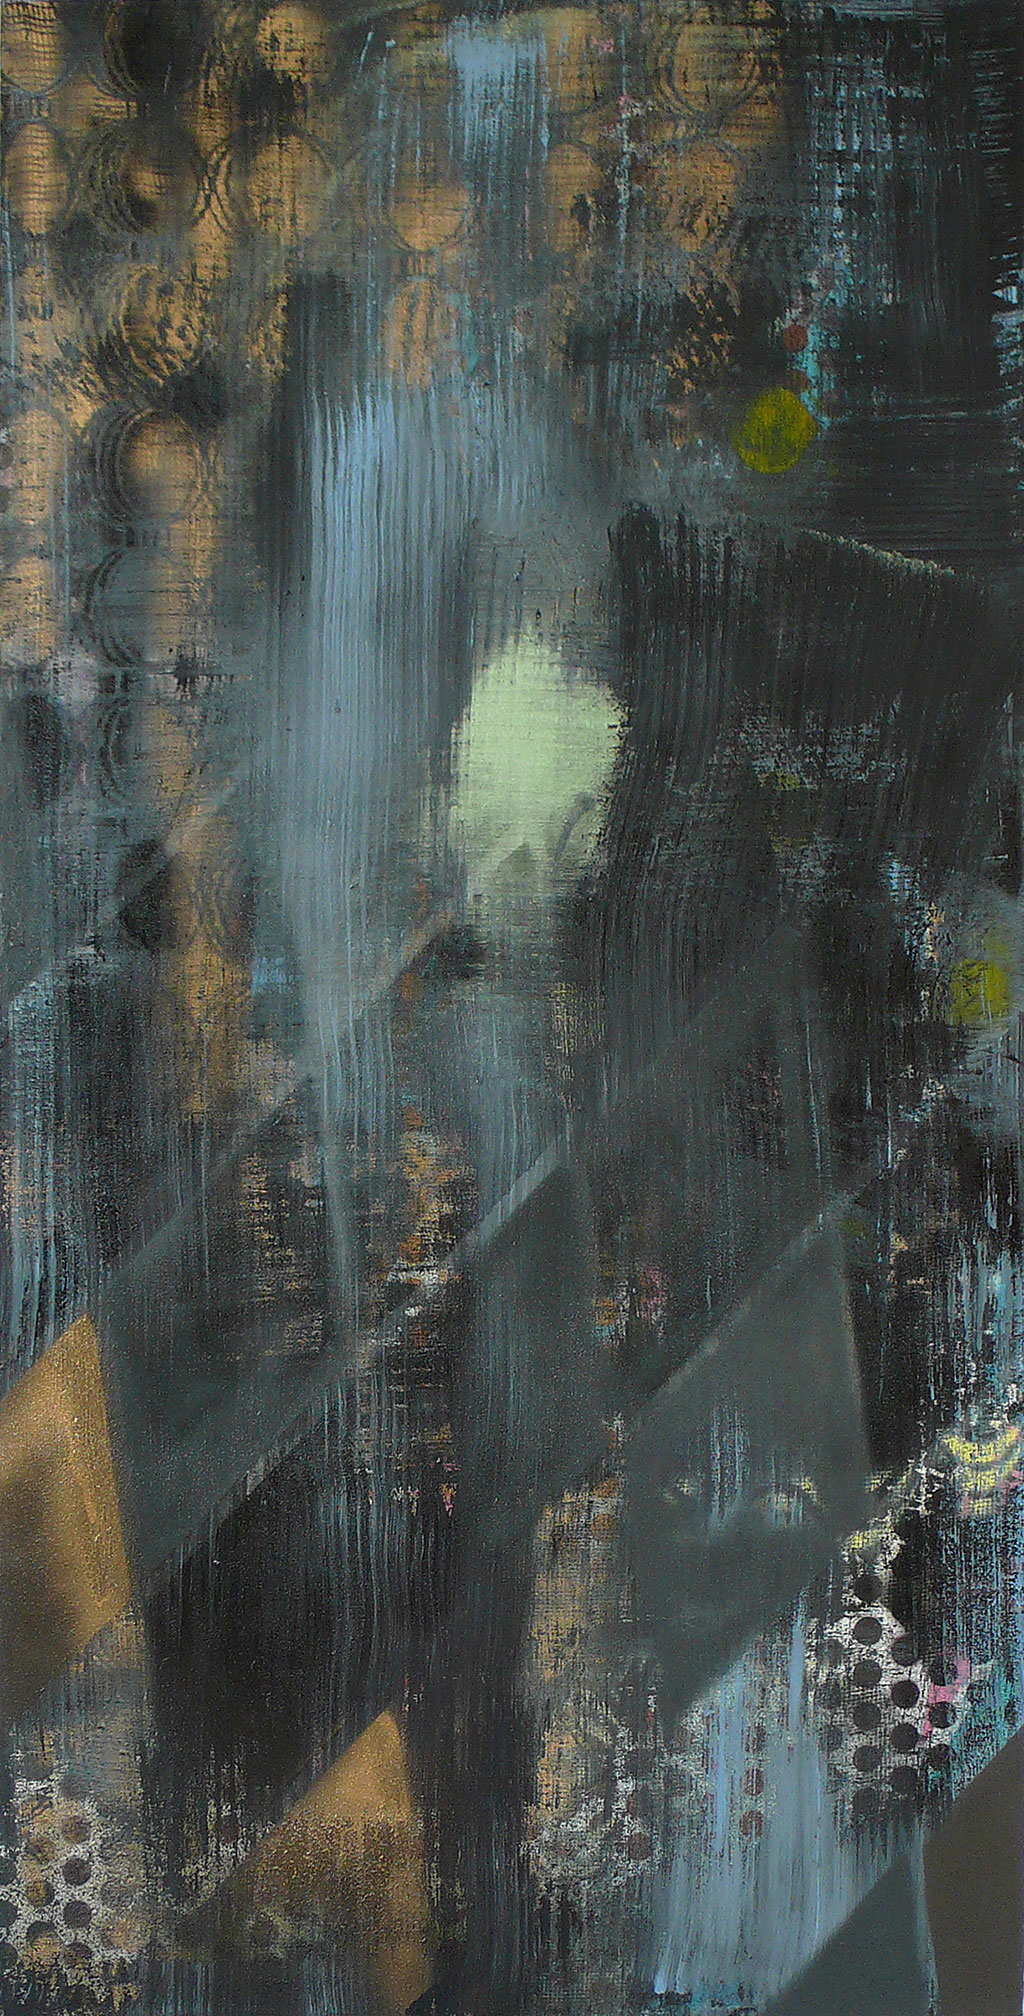 Untitled 03, 2014, 180 x 90 cm, mixed media on canvas